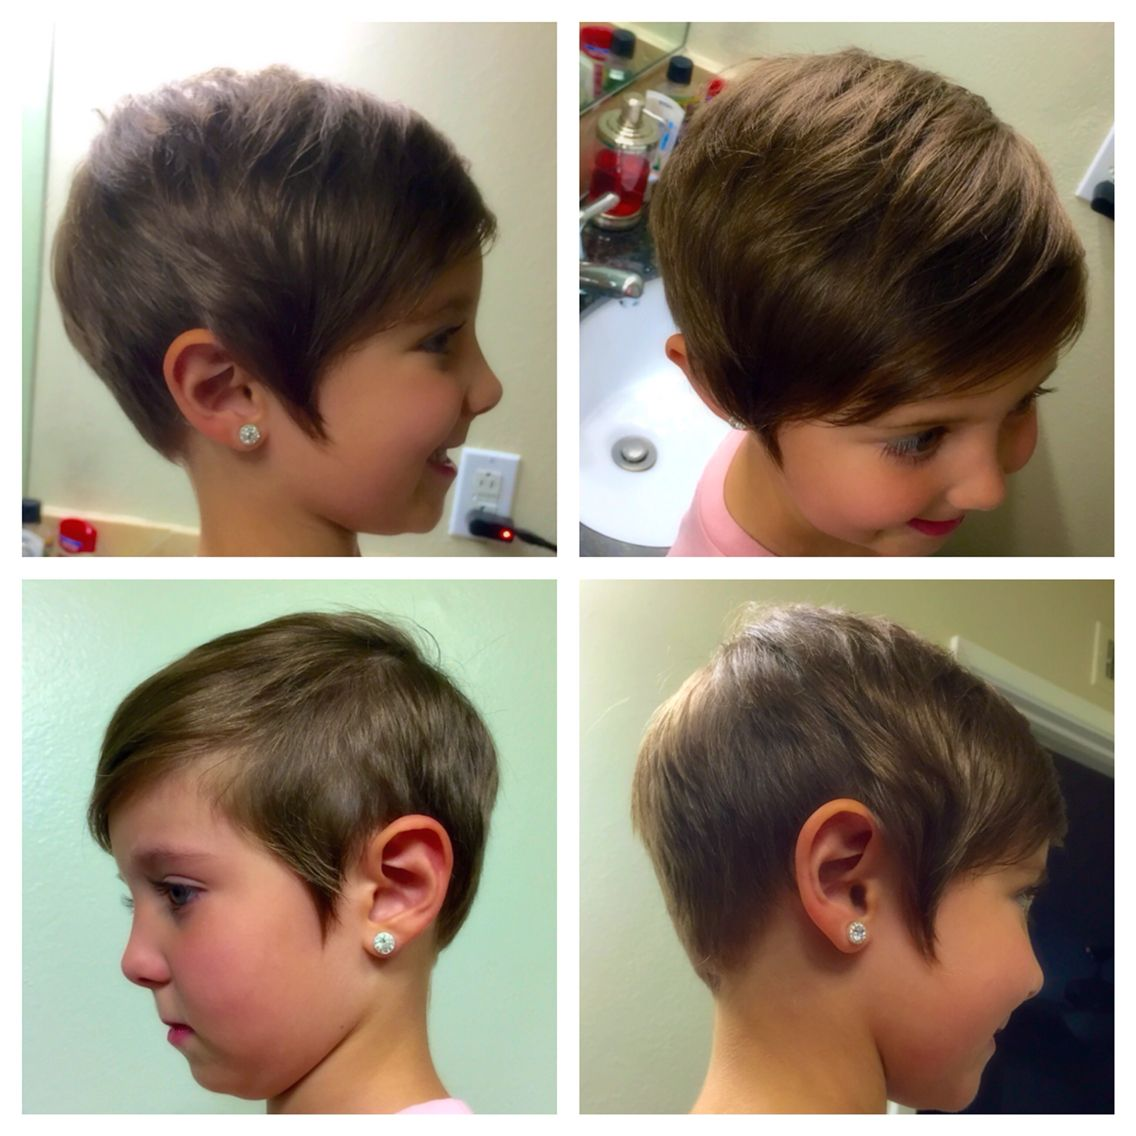 Kids Toddler Short Pixie Haircut Girls Asymmetrical Hair Cut